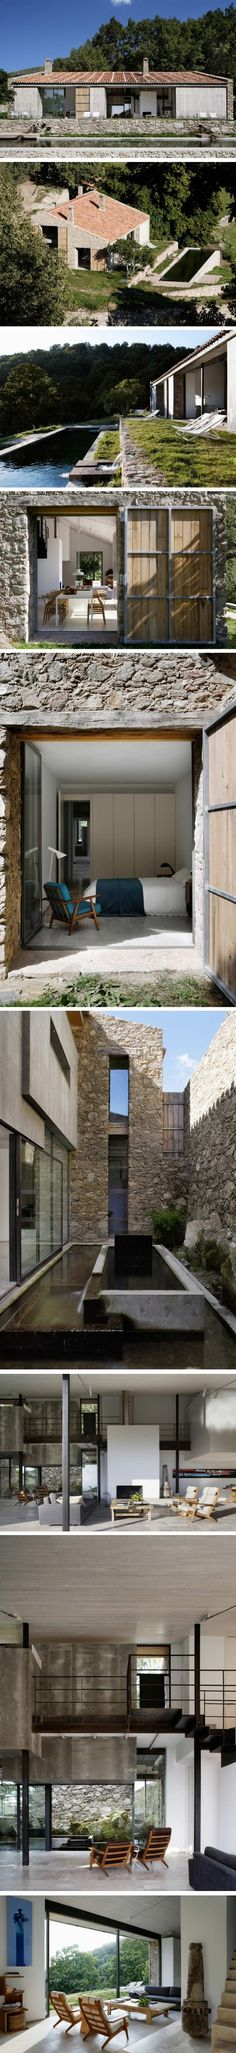 Estate in Extremadura par Abaton Architects - Journal du Design